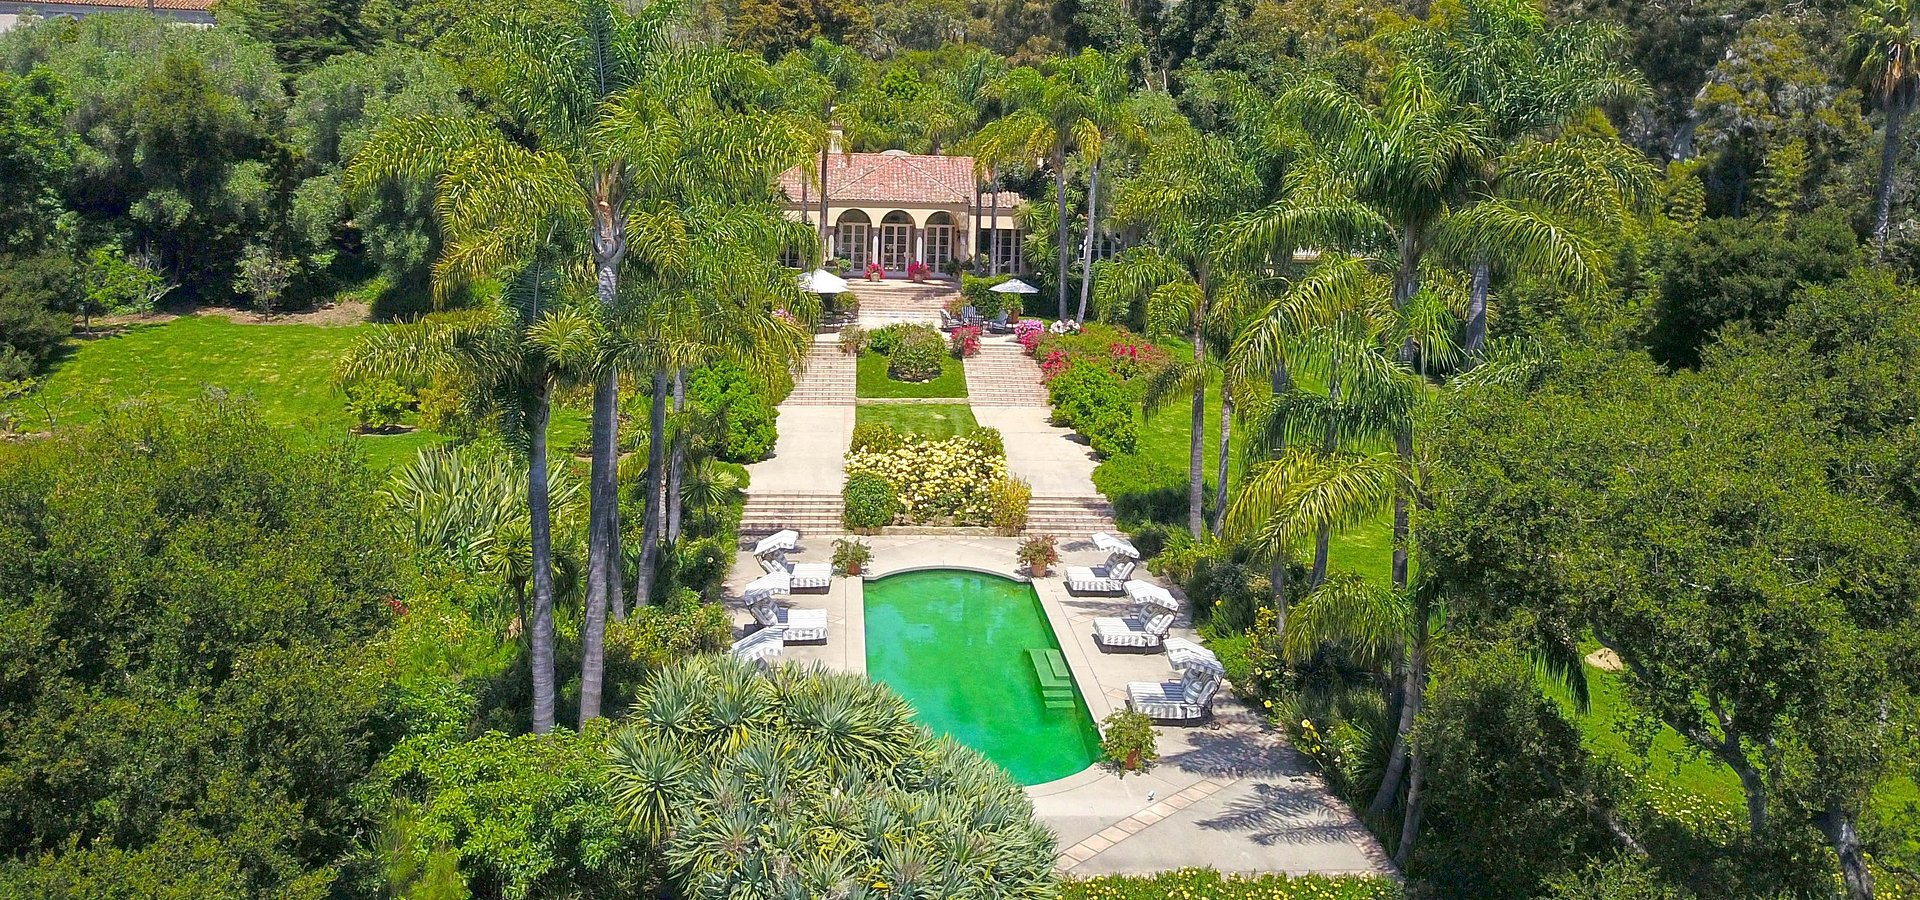 Coldwell Banker Realty Lists Historical Montecito Estate Formerly Owned by Artist Teri Rojas for $16.495 Million